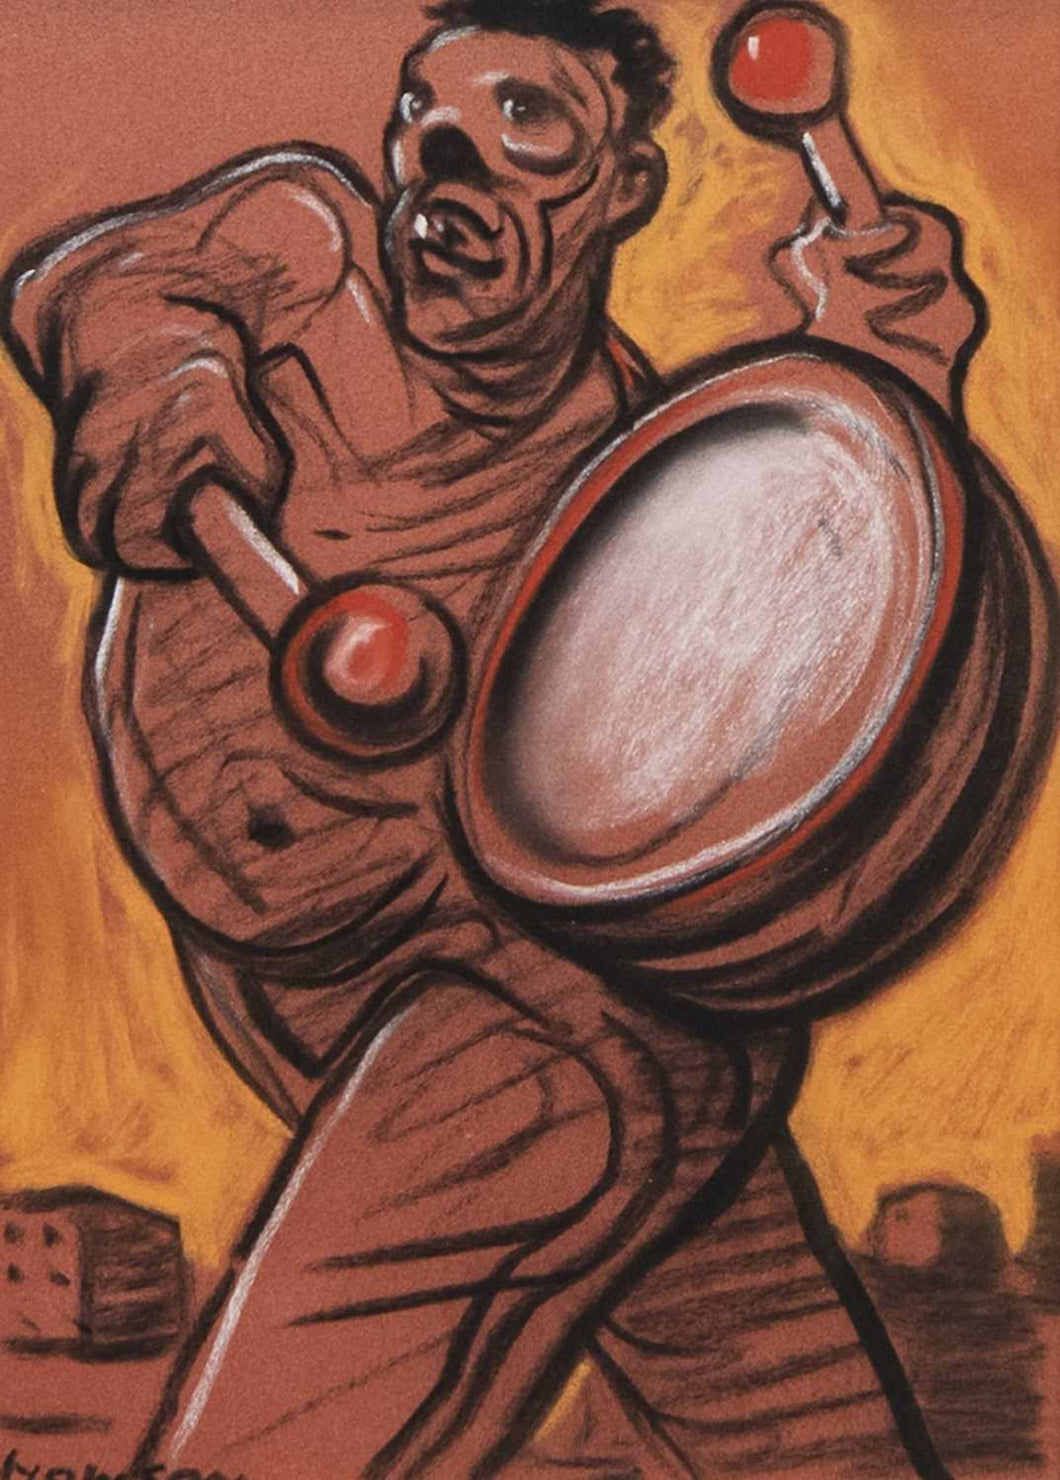 Original Strutting Drummer by Peter Howson